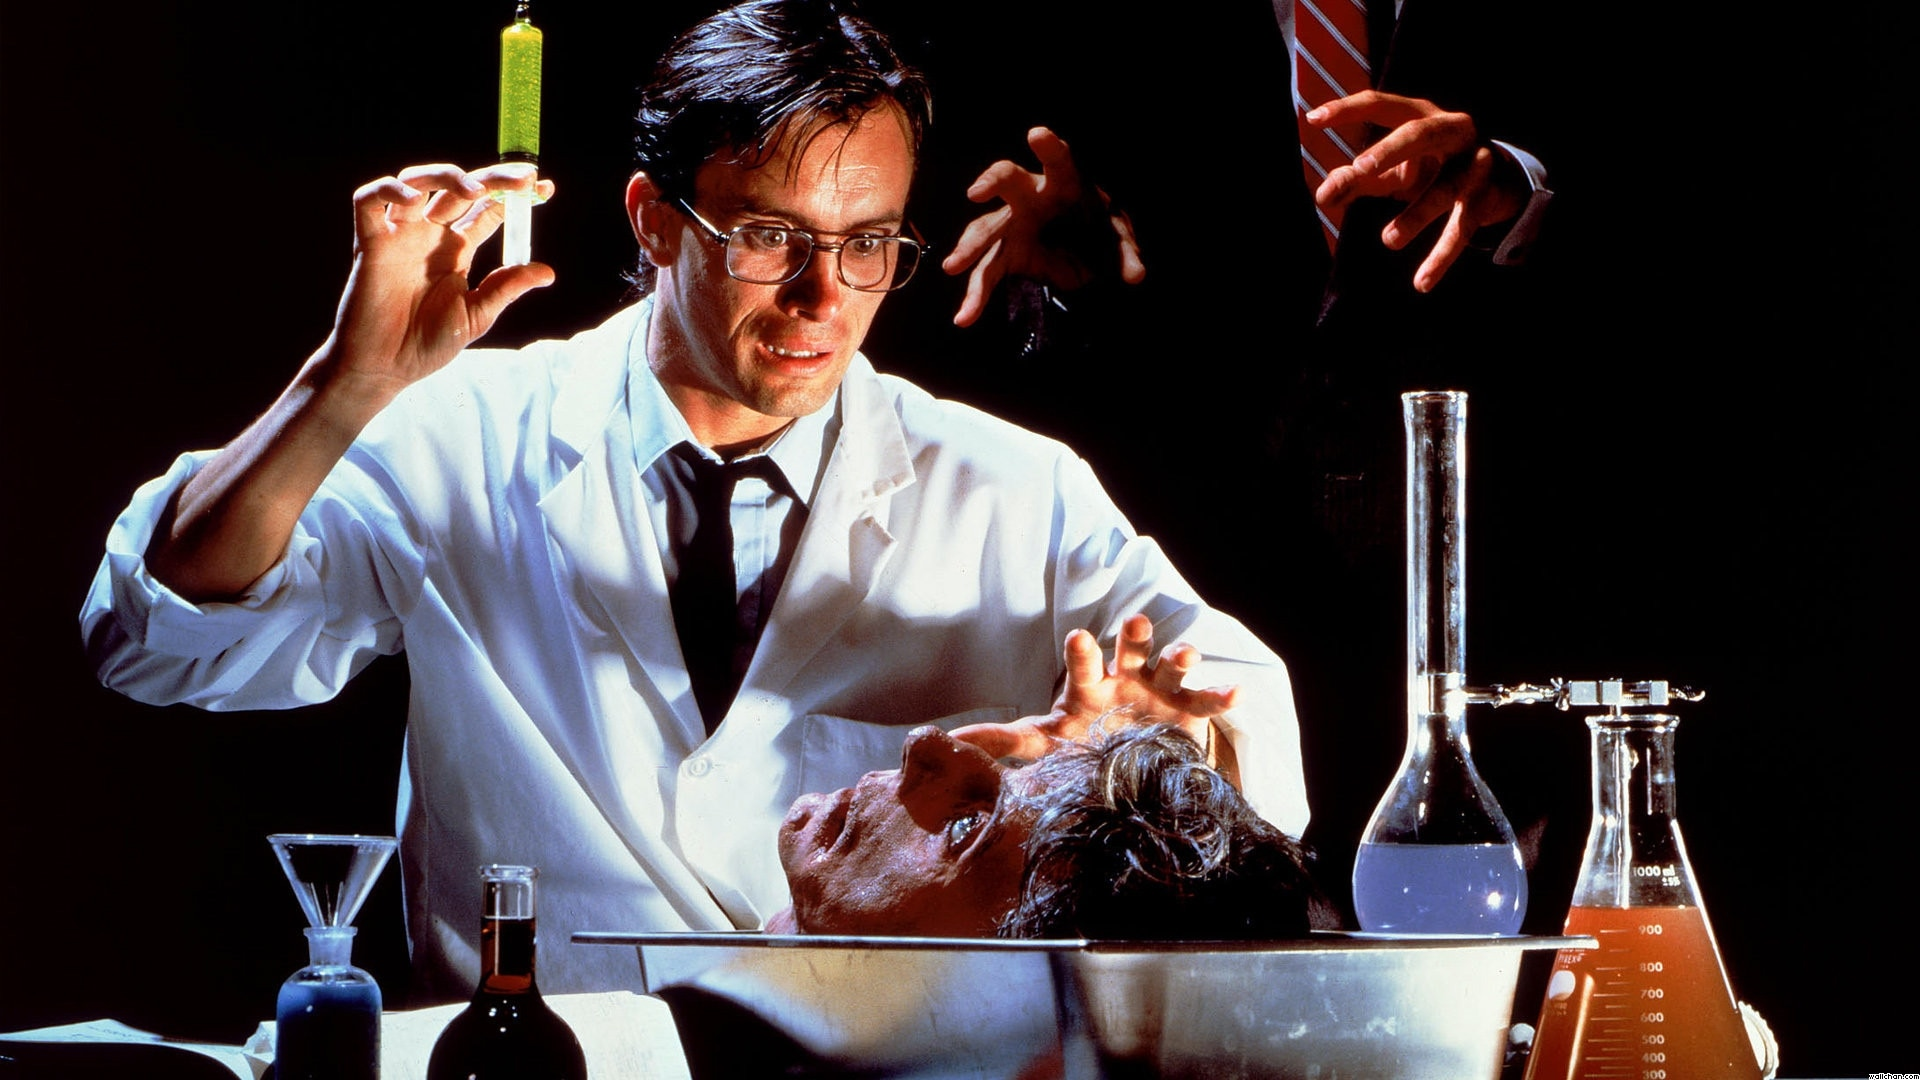 reanimatorbanner - We Will Be Seeing a Bevy of New Re-Animator Merchandise